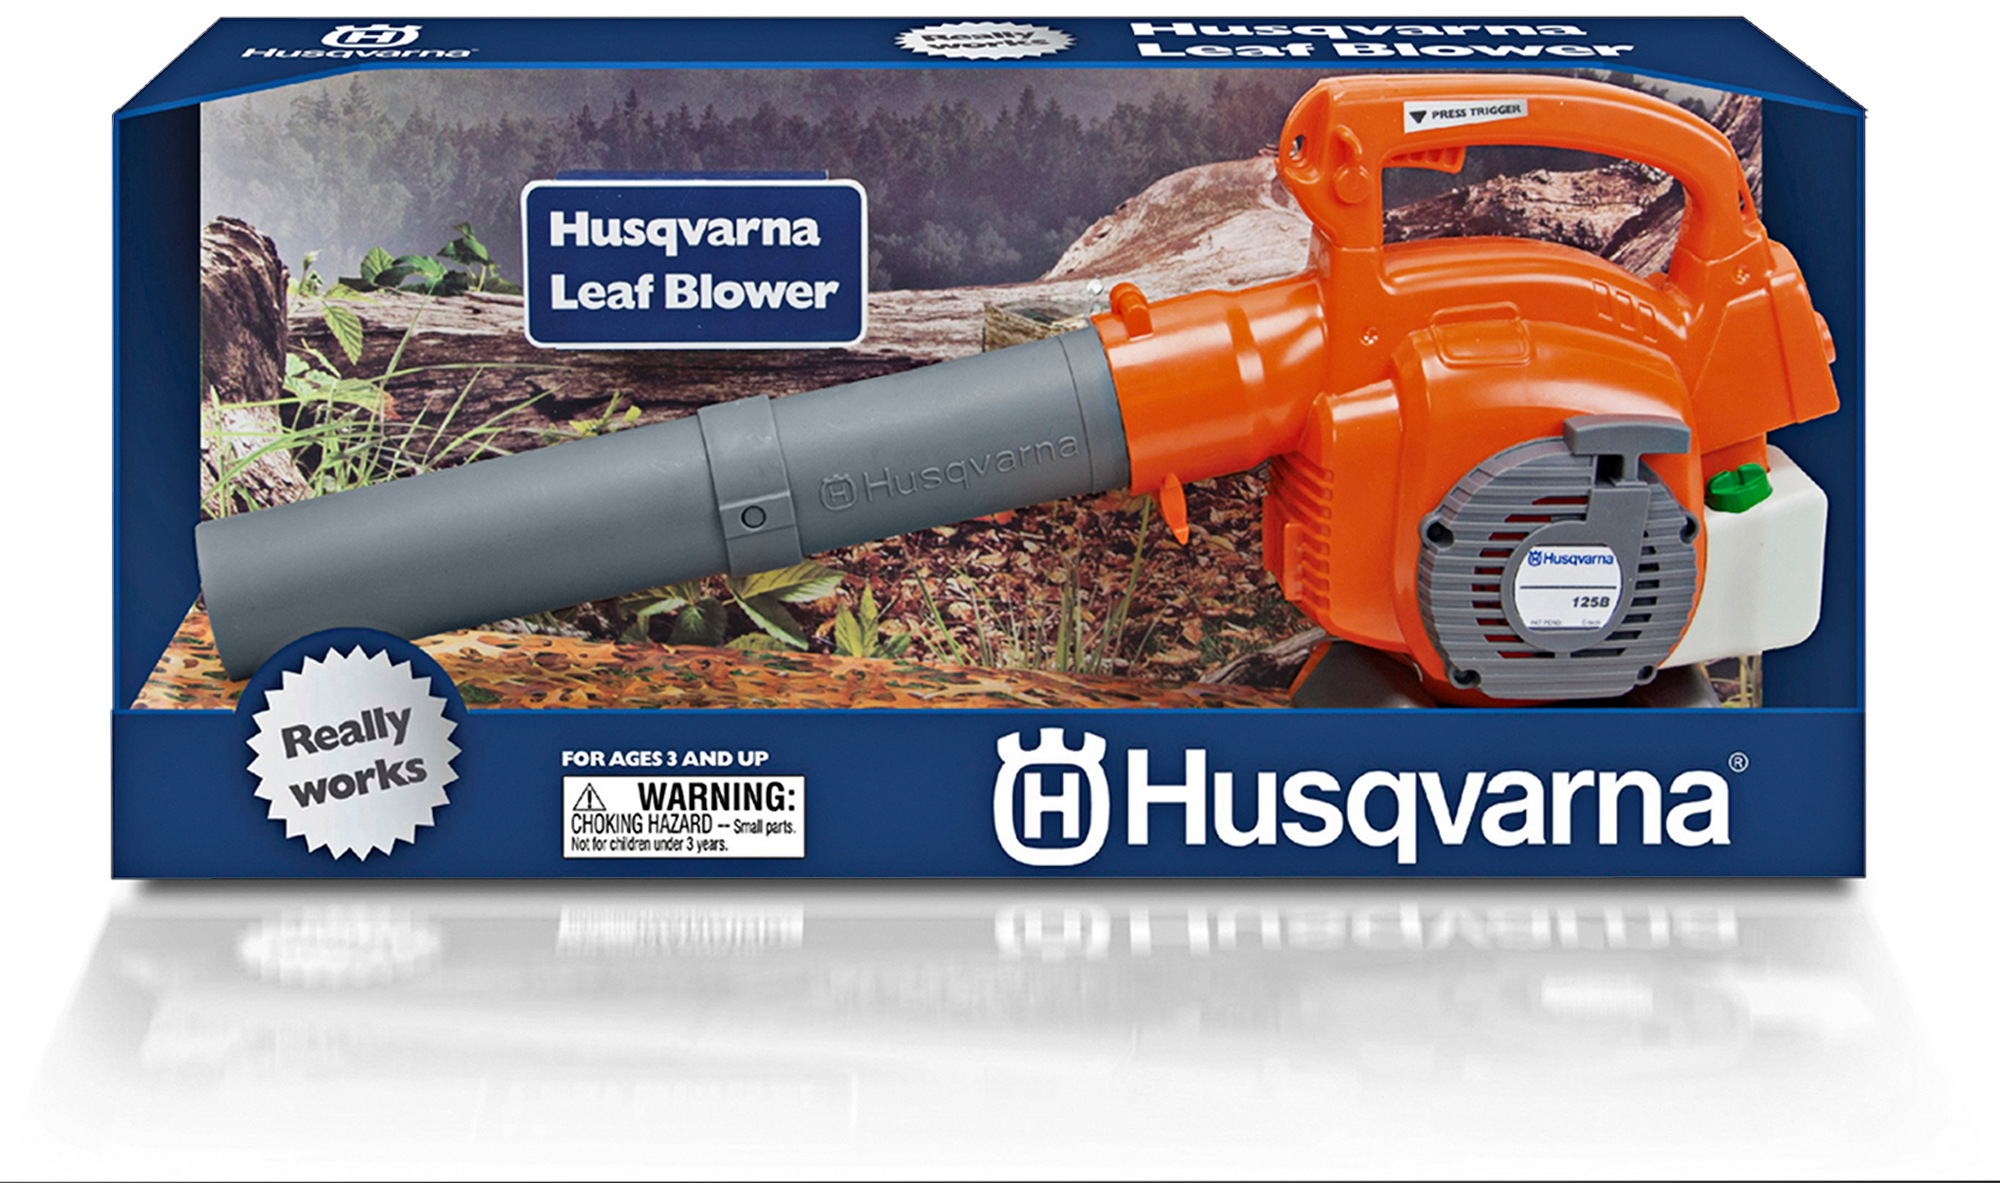 Image for Toy Leaf Blower                                                                                                                  from HusqvarnaB2C